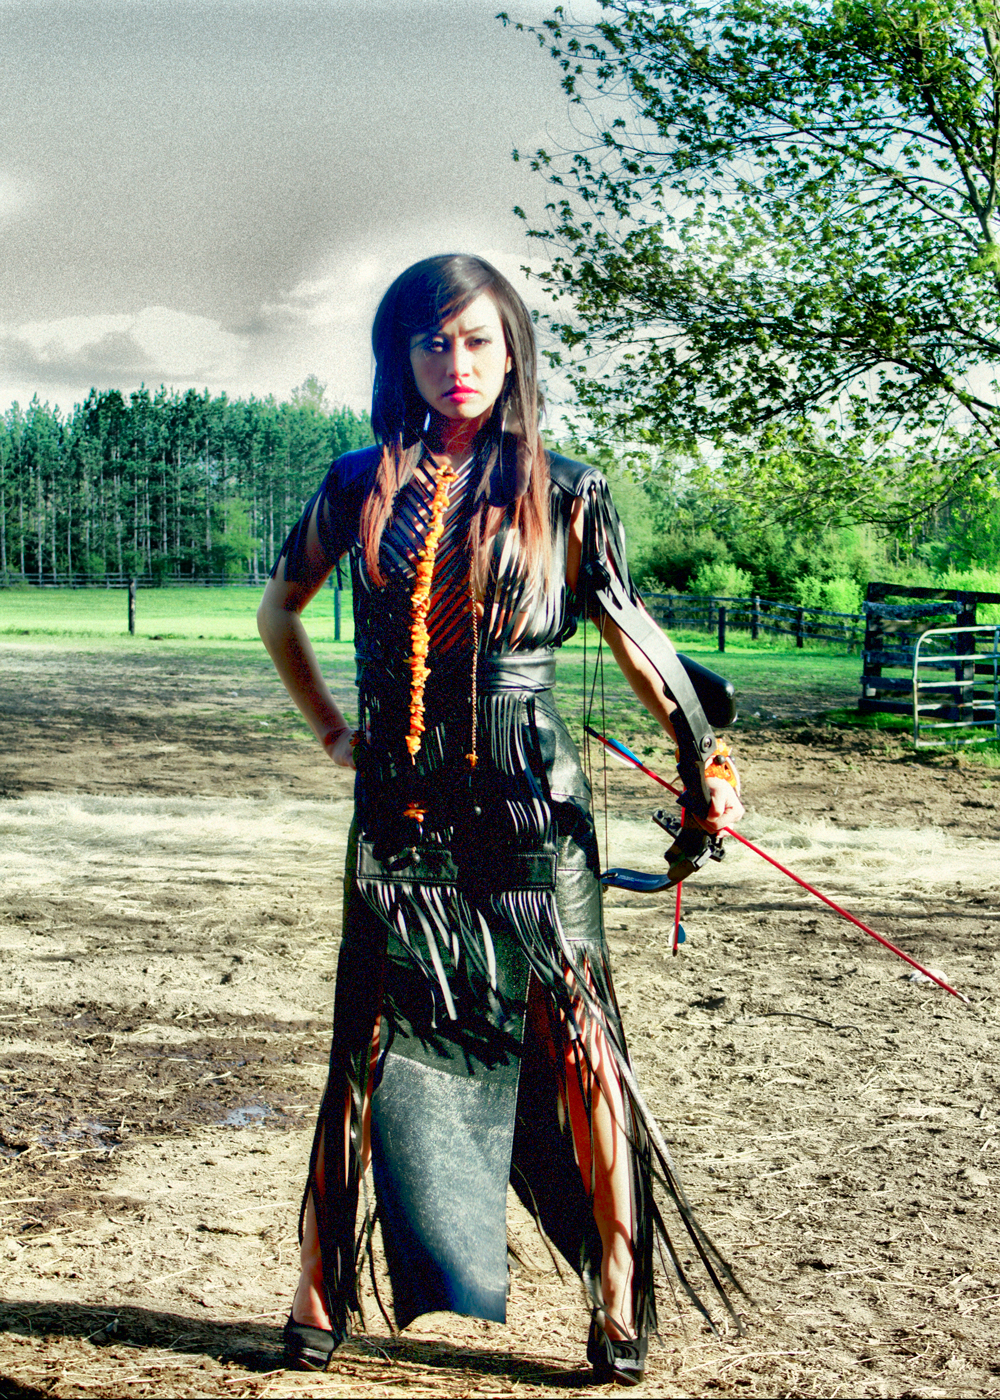 Chinese Star Ayi Jihu models the Angela Demontigny Young Native™ look styled like Tonto from Lone Ranger 2013